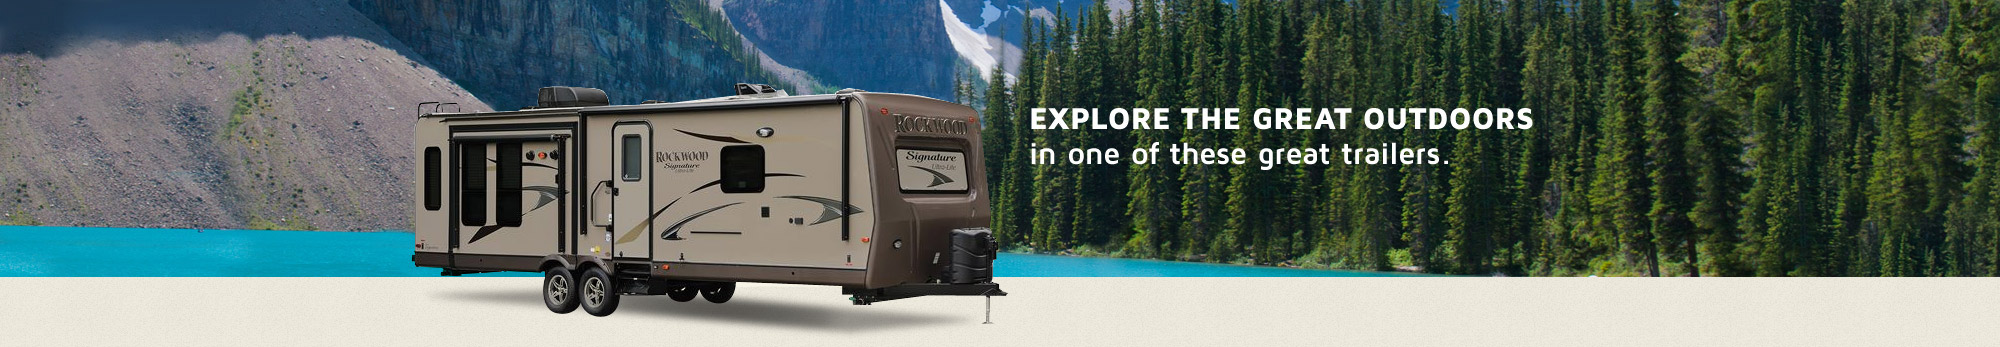 Explore the Great Outdoors with Rockwood RVs